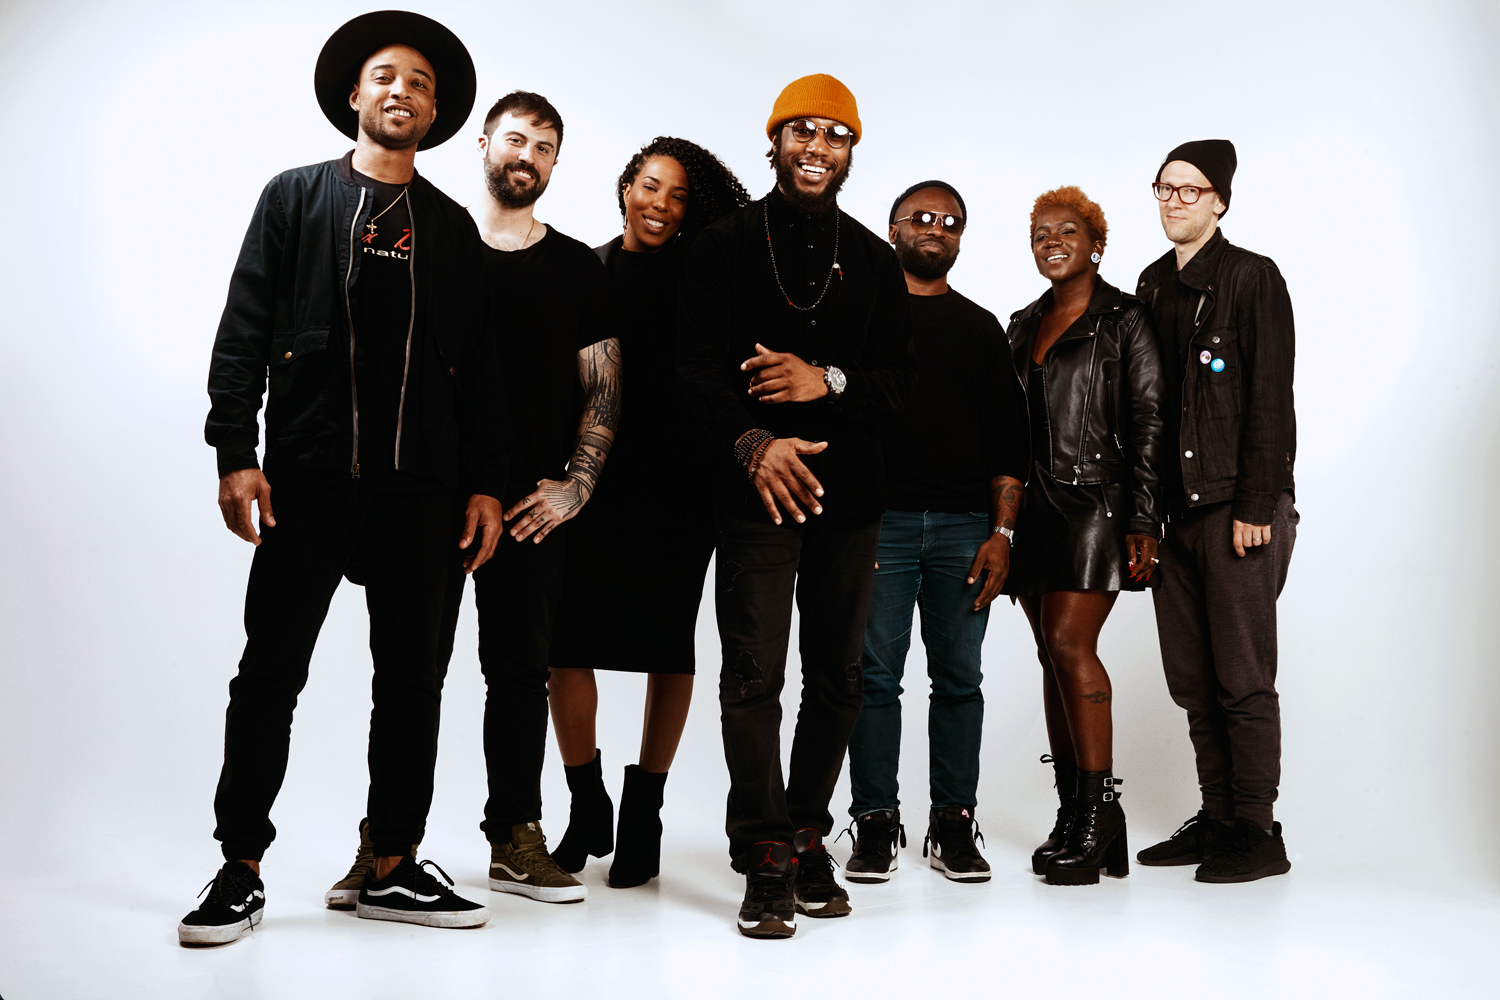 Cory Henry & The Funk Apostles 12/27/2018